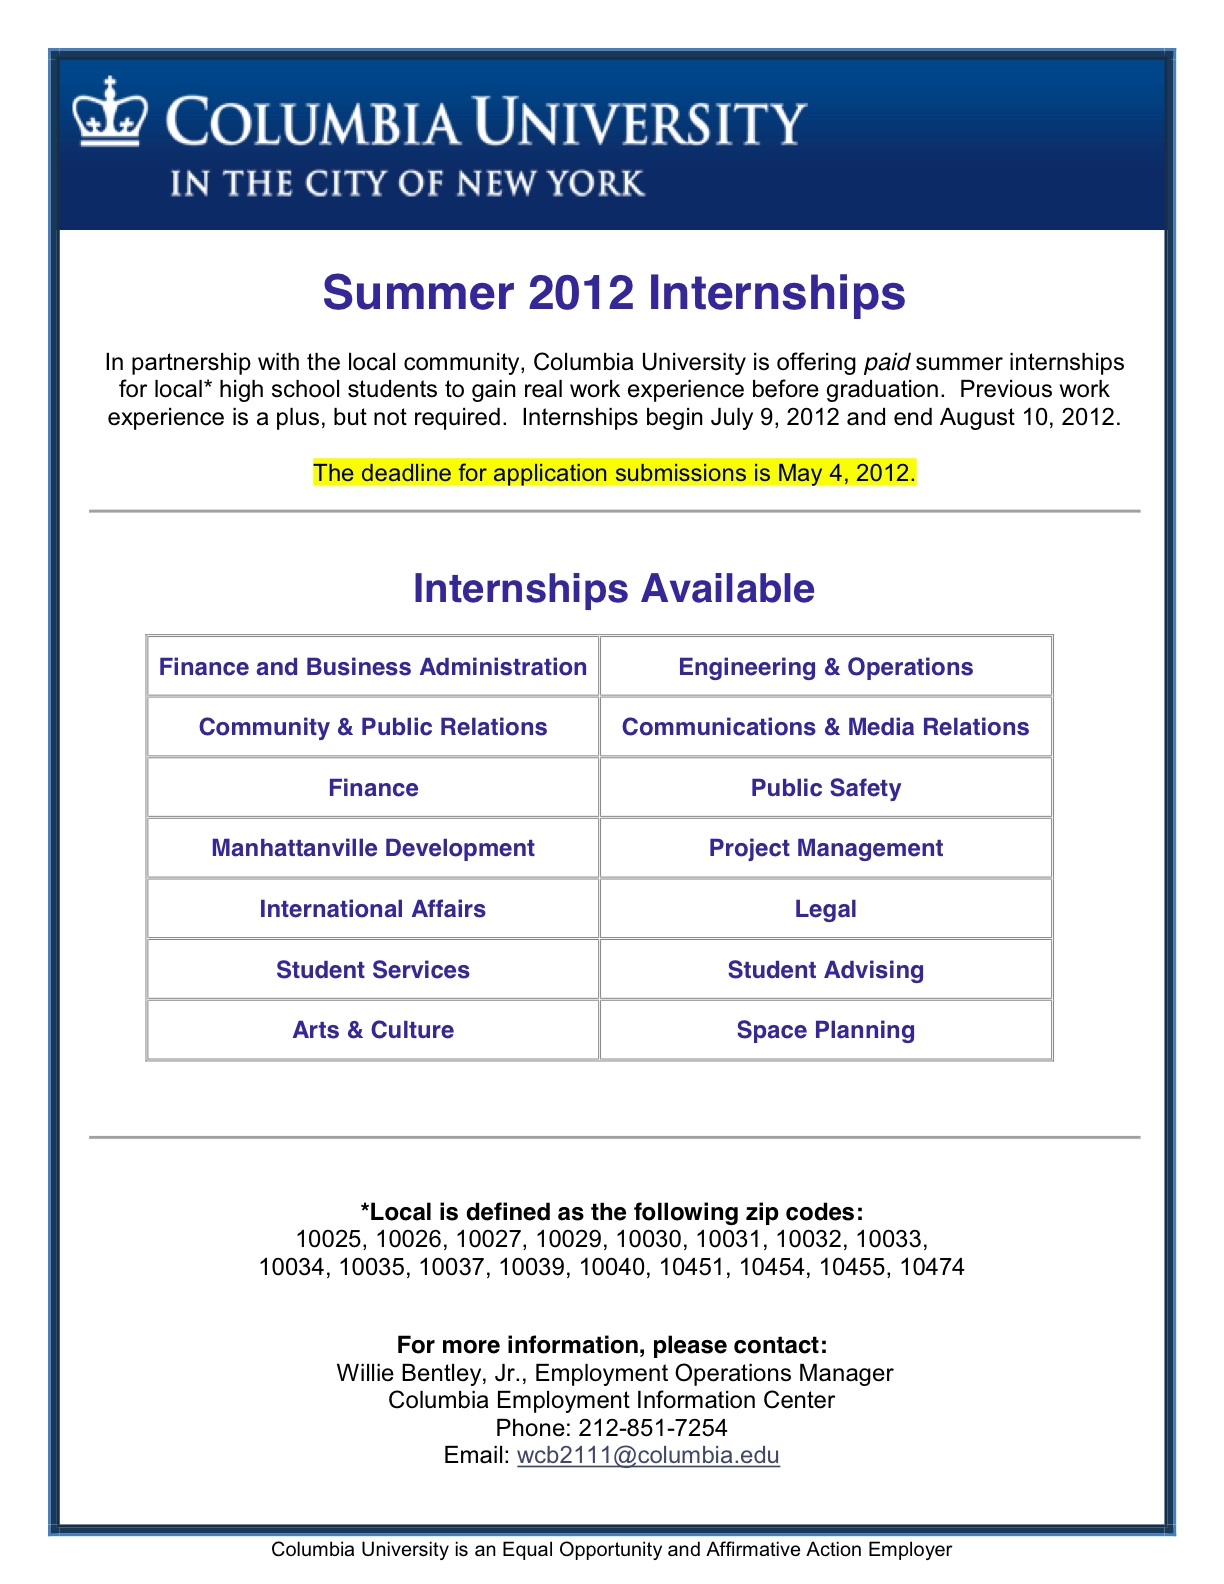 Columbia University is Offering PAID Internships to High